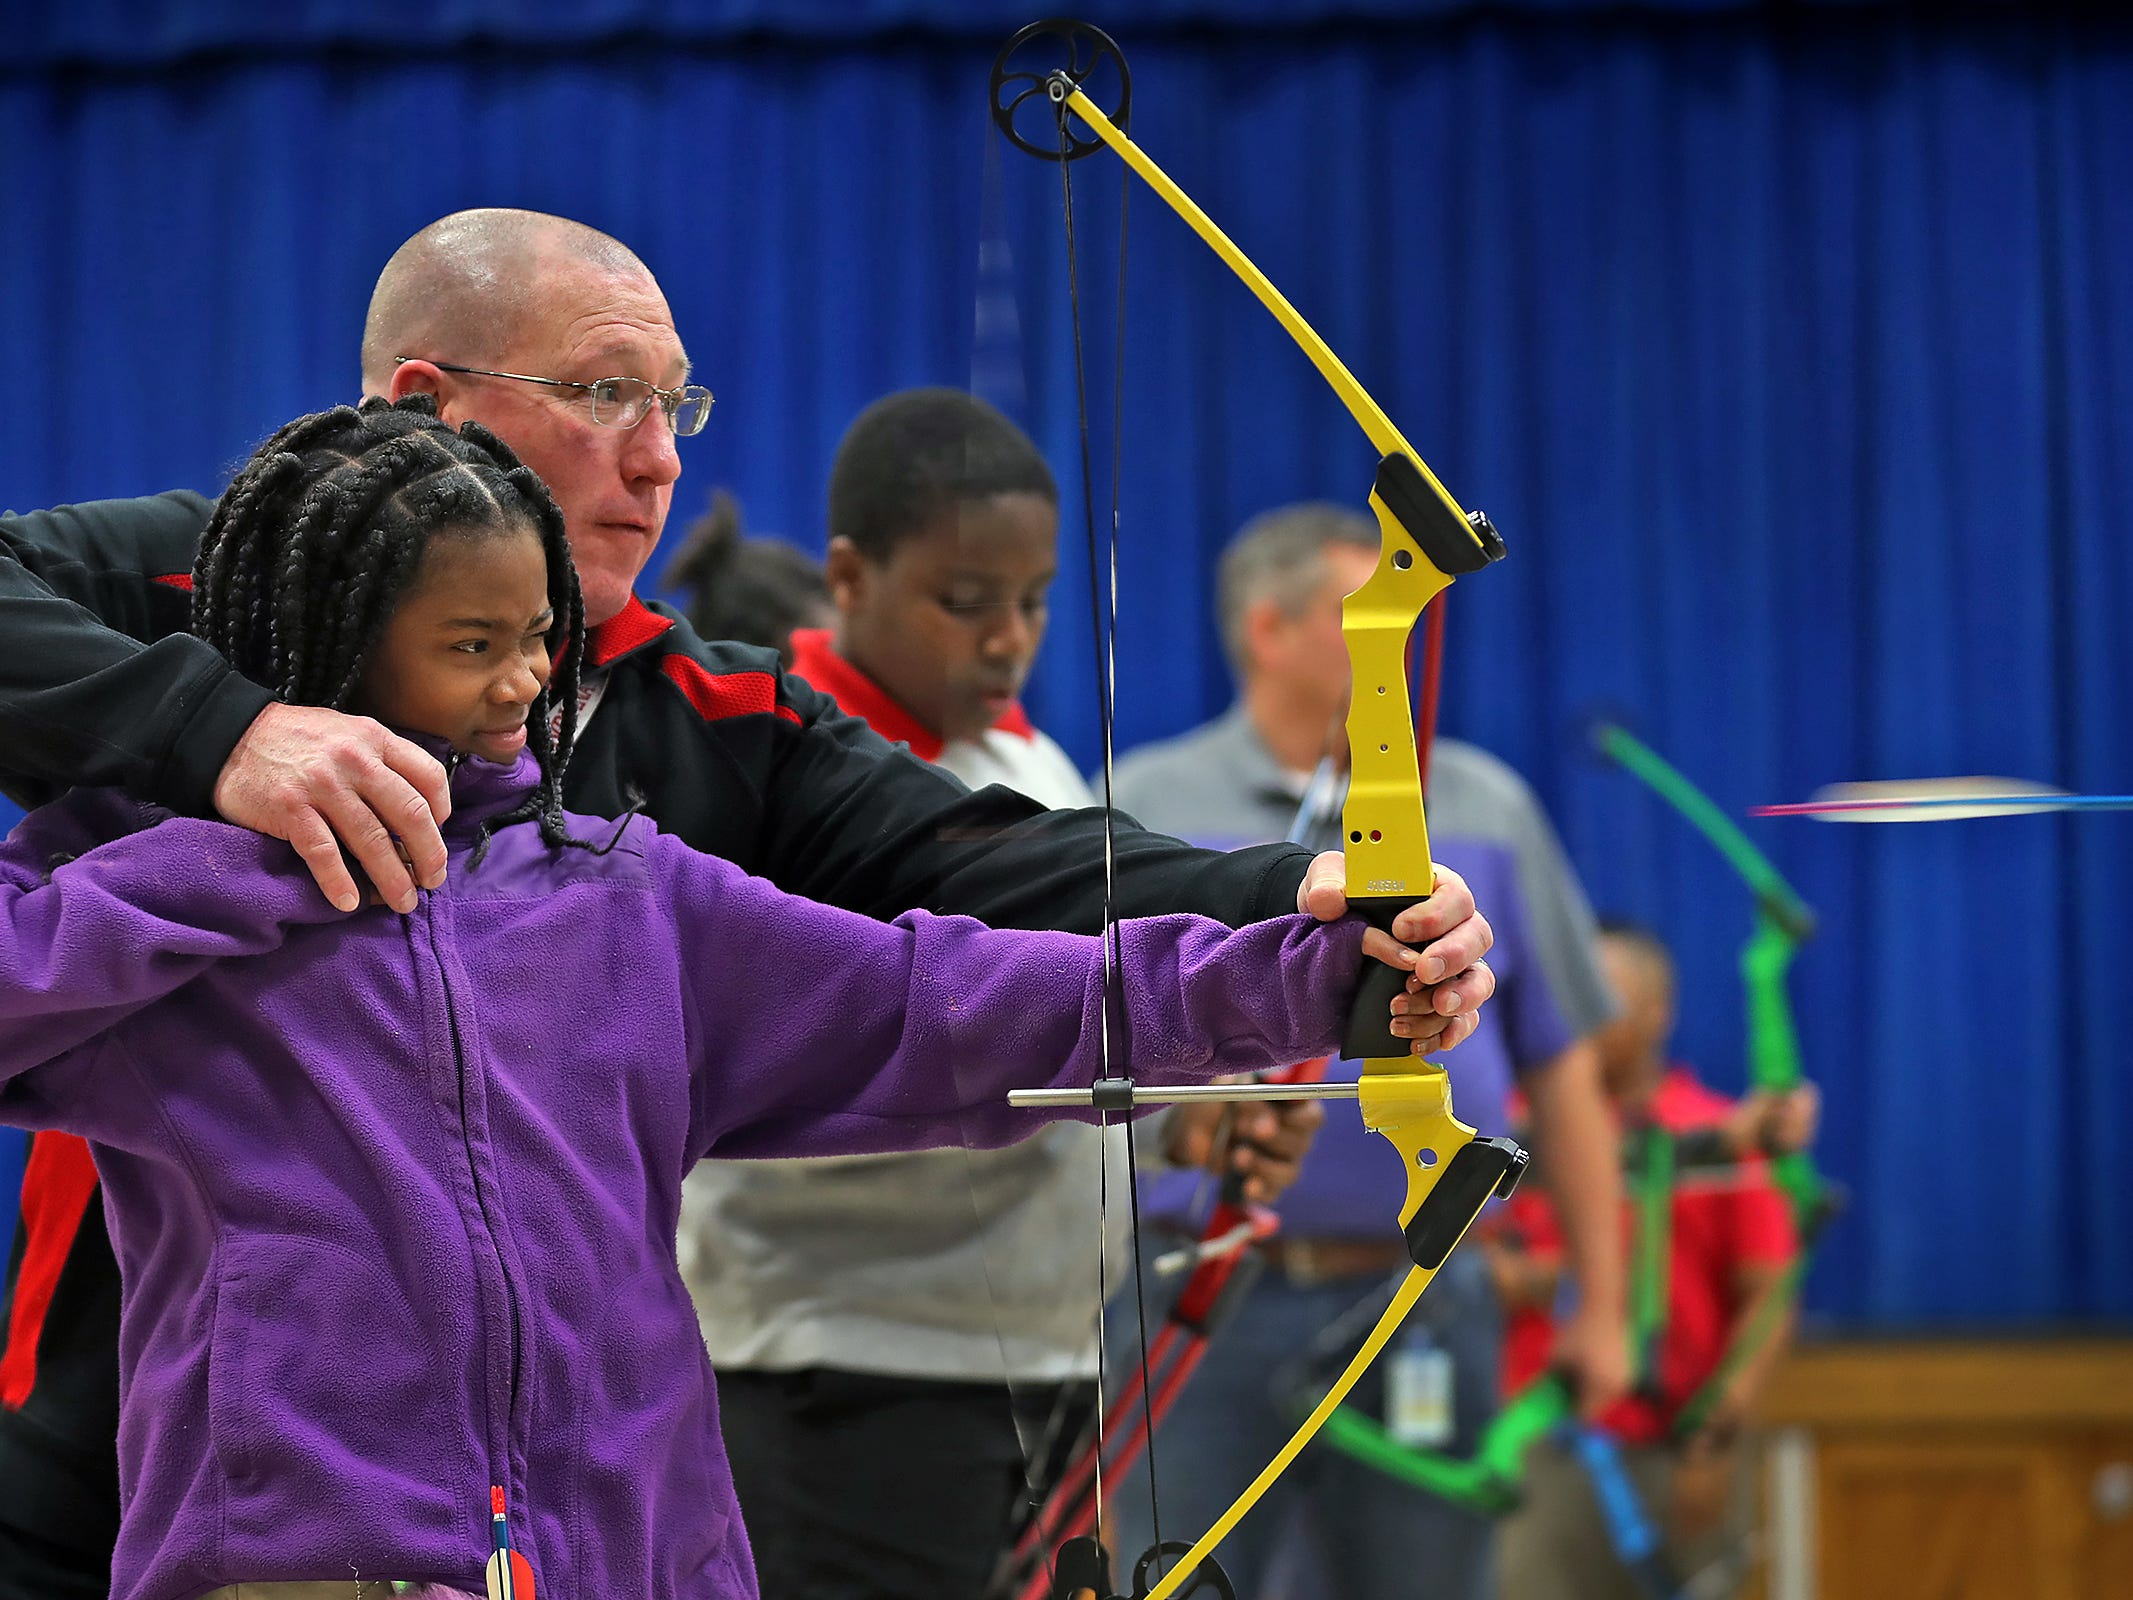 William Crawford helps Brianna Smith shoot during archery class at Lew Wallace Elementary IPS 107, Thursday, Dec. 20, 2018.